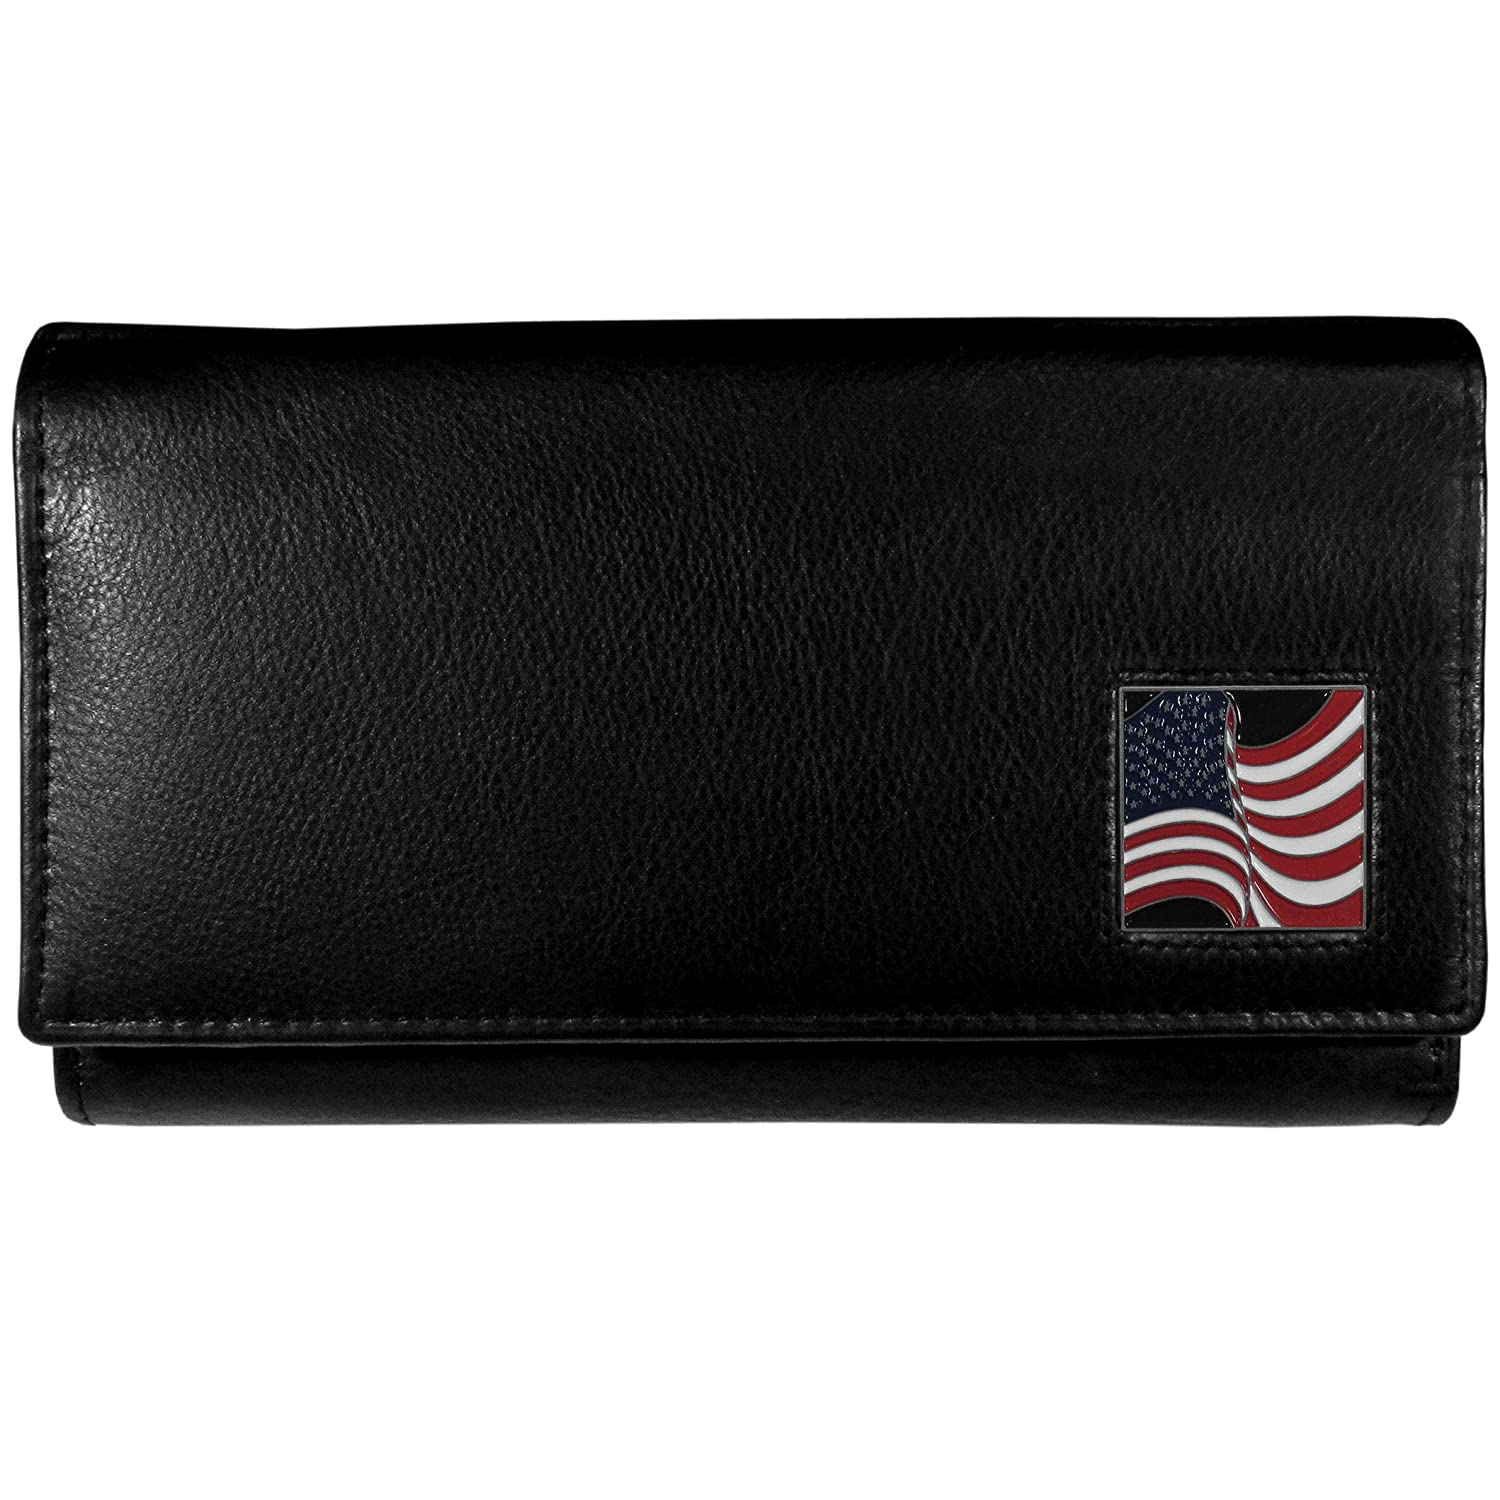 Womens Leather Wallet American Flag